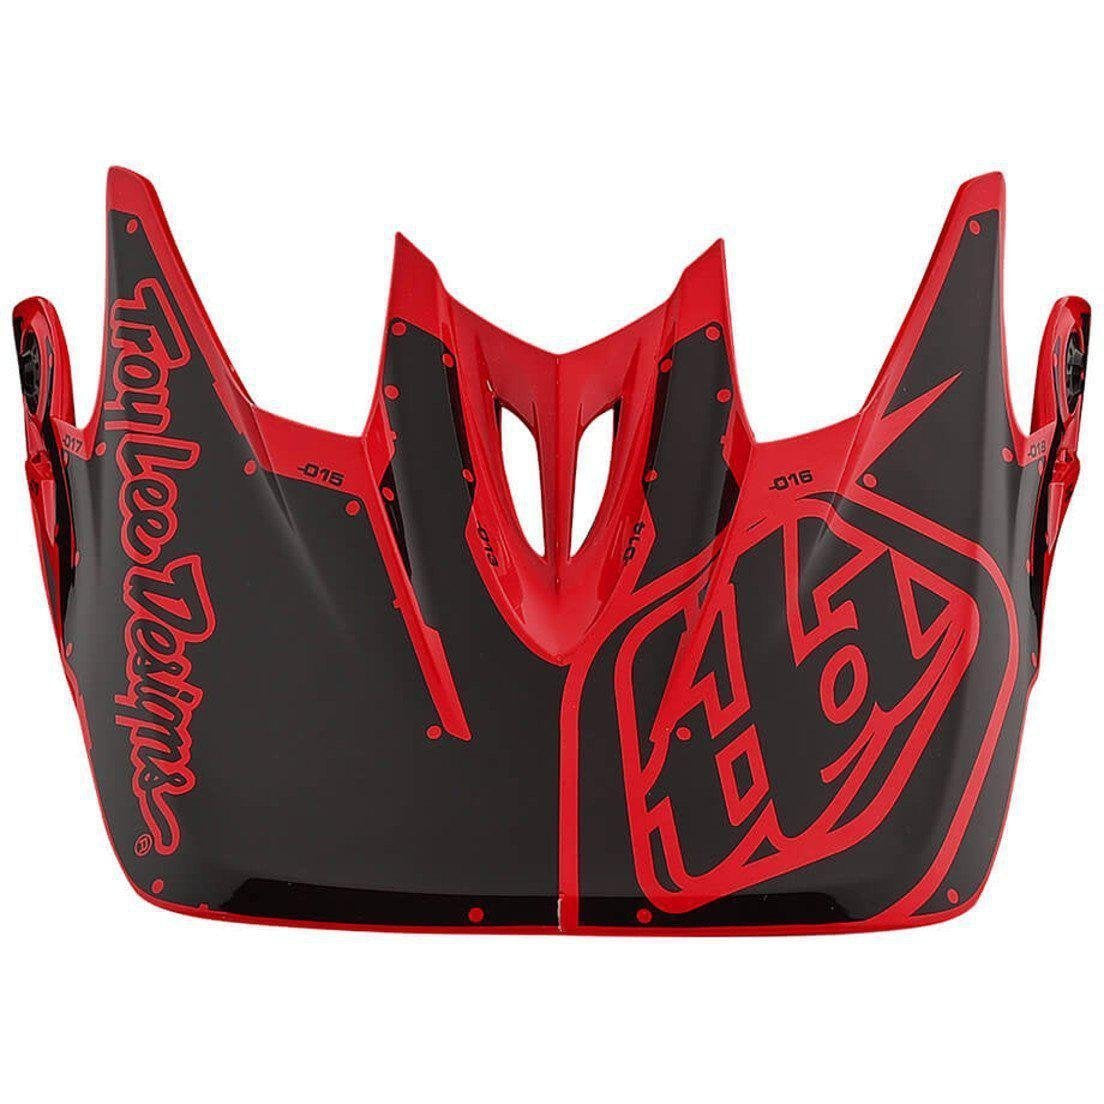 Troy Lee Designs-Troy Lee Designs D3 Helmet Replacement Visor-FACTORY RED-D3 Fiberlite-TLD157008400-saddleback-elite-performance-cycling